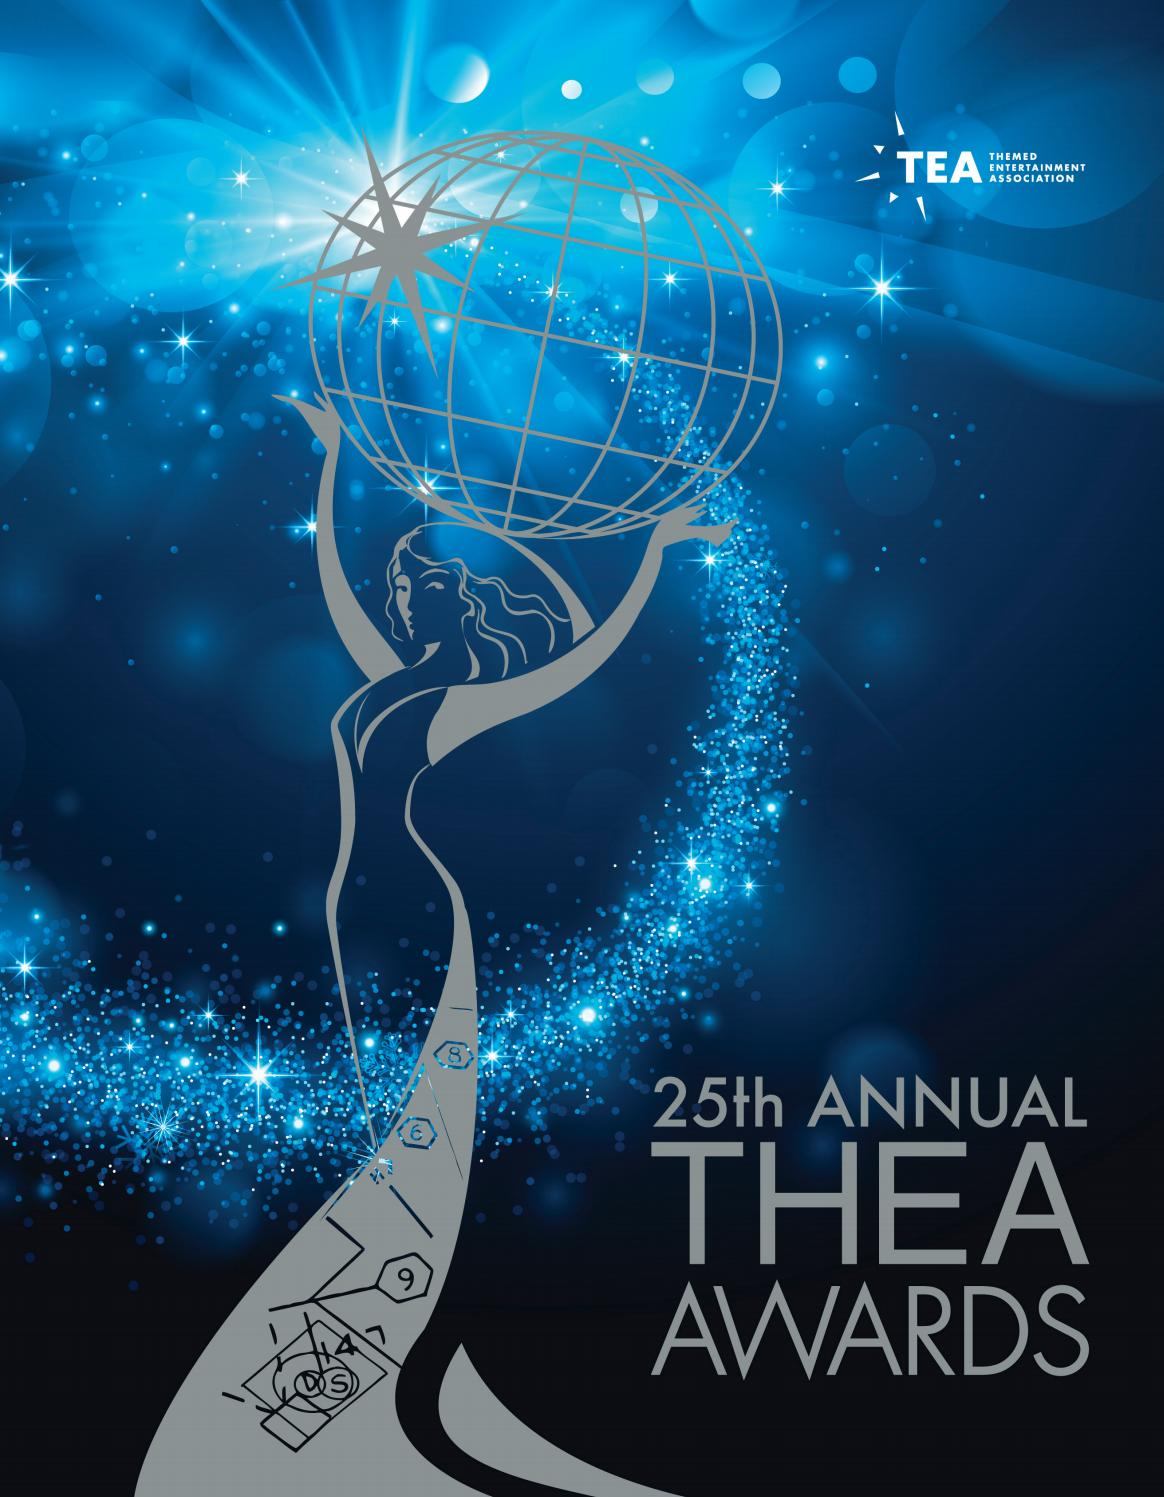 25th Annual TEA Thea Awards Program - April 2019 by Themed